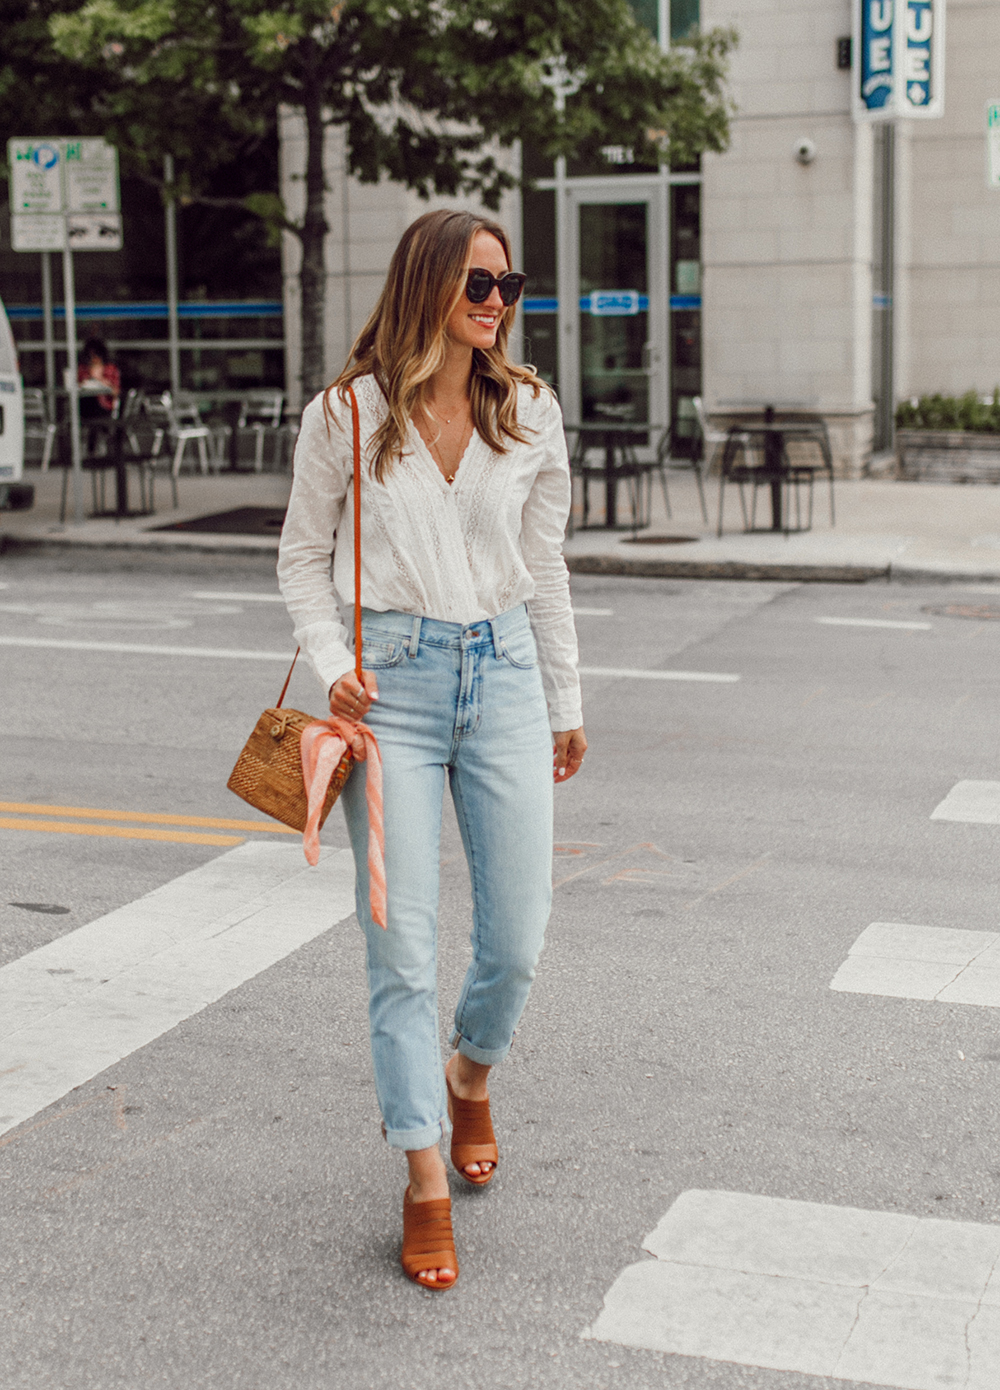 livvland-blog-olivia-watson-austin-texas-fashion-lifestyle-blogger-sezane-lace-deep-v-top-rattan-bag-madewell-summer-jeans-3